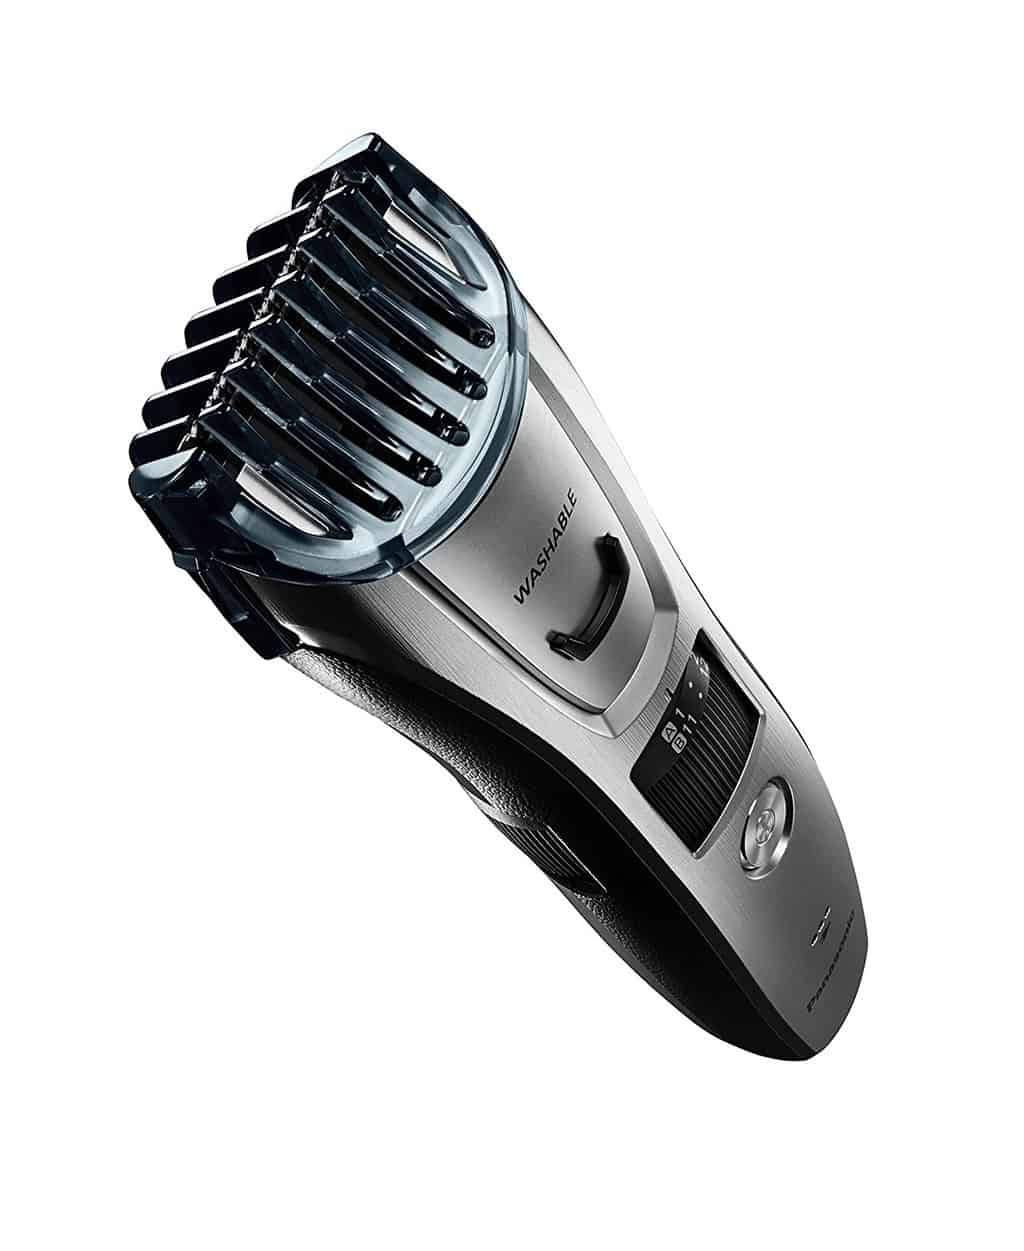 81Y3YzFizNL._SL1500_ 5 Most Demanded Panasonic Beard Trimmers: Insider's Reviews